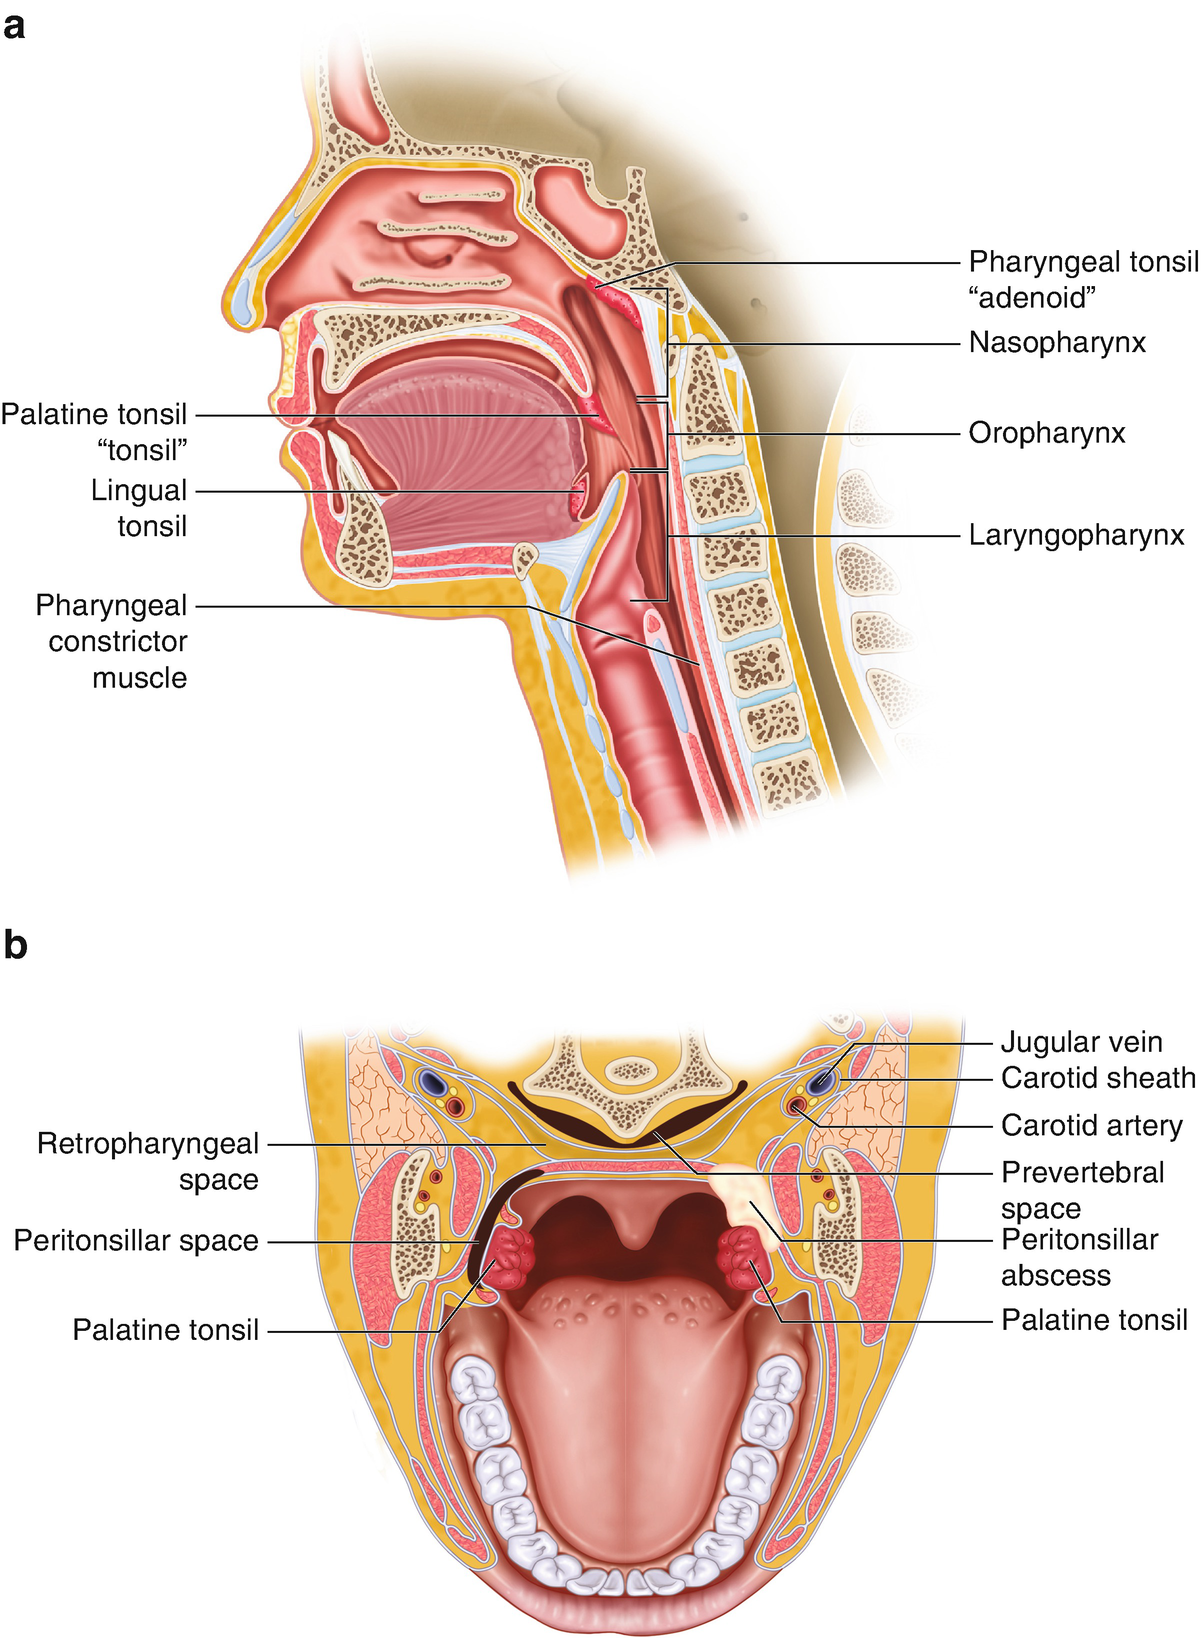 Acute Pharyngitis, Tonsillitis, and Peritonsillar Abscess